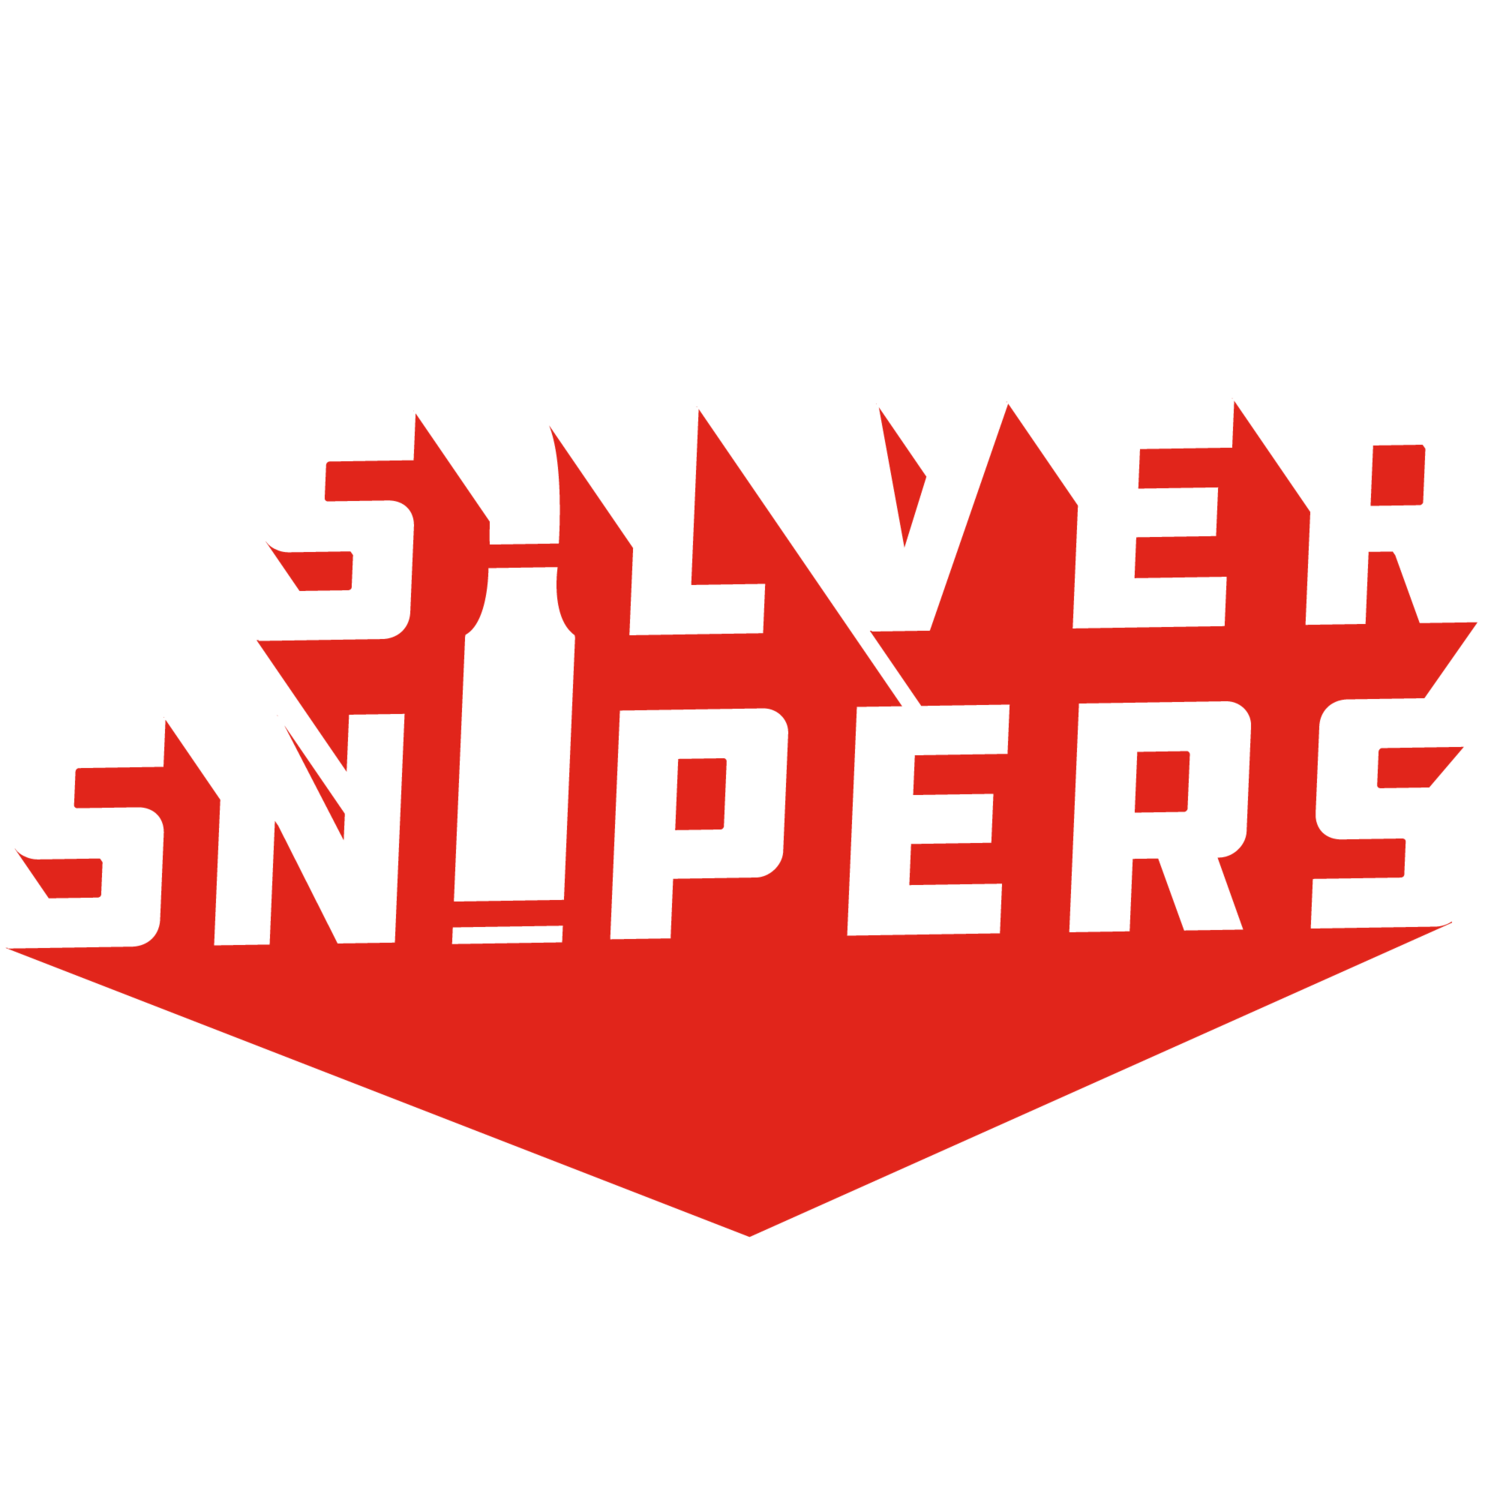 Csgo silver png. Lenovo snipers